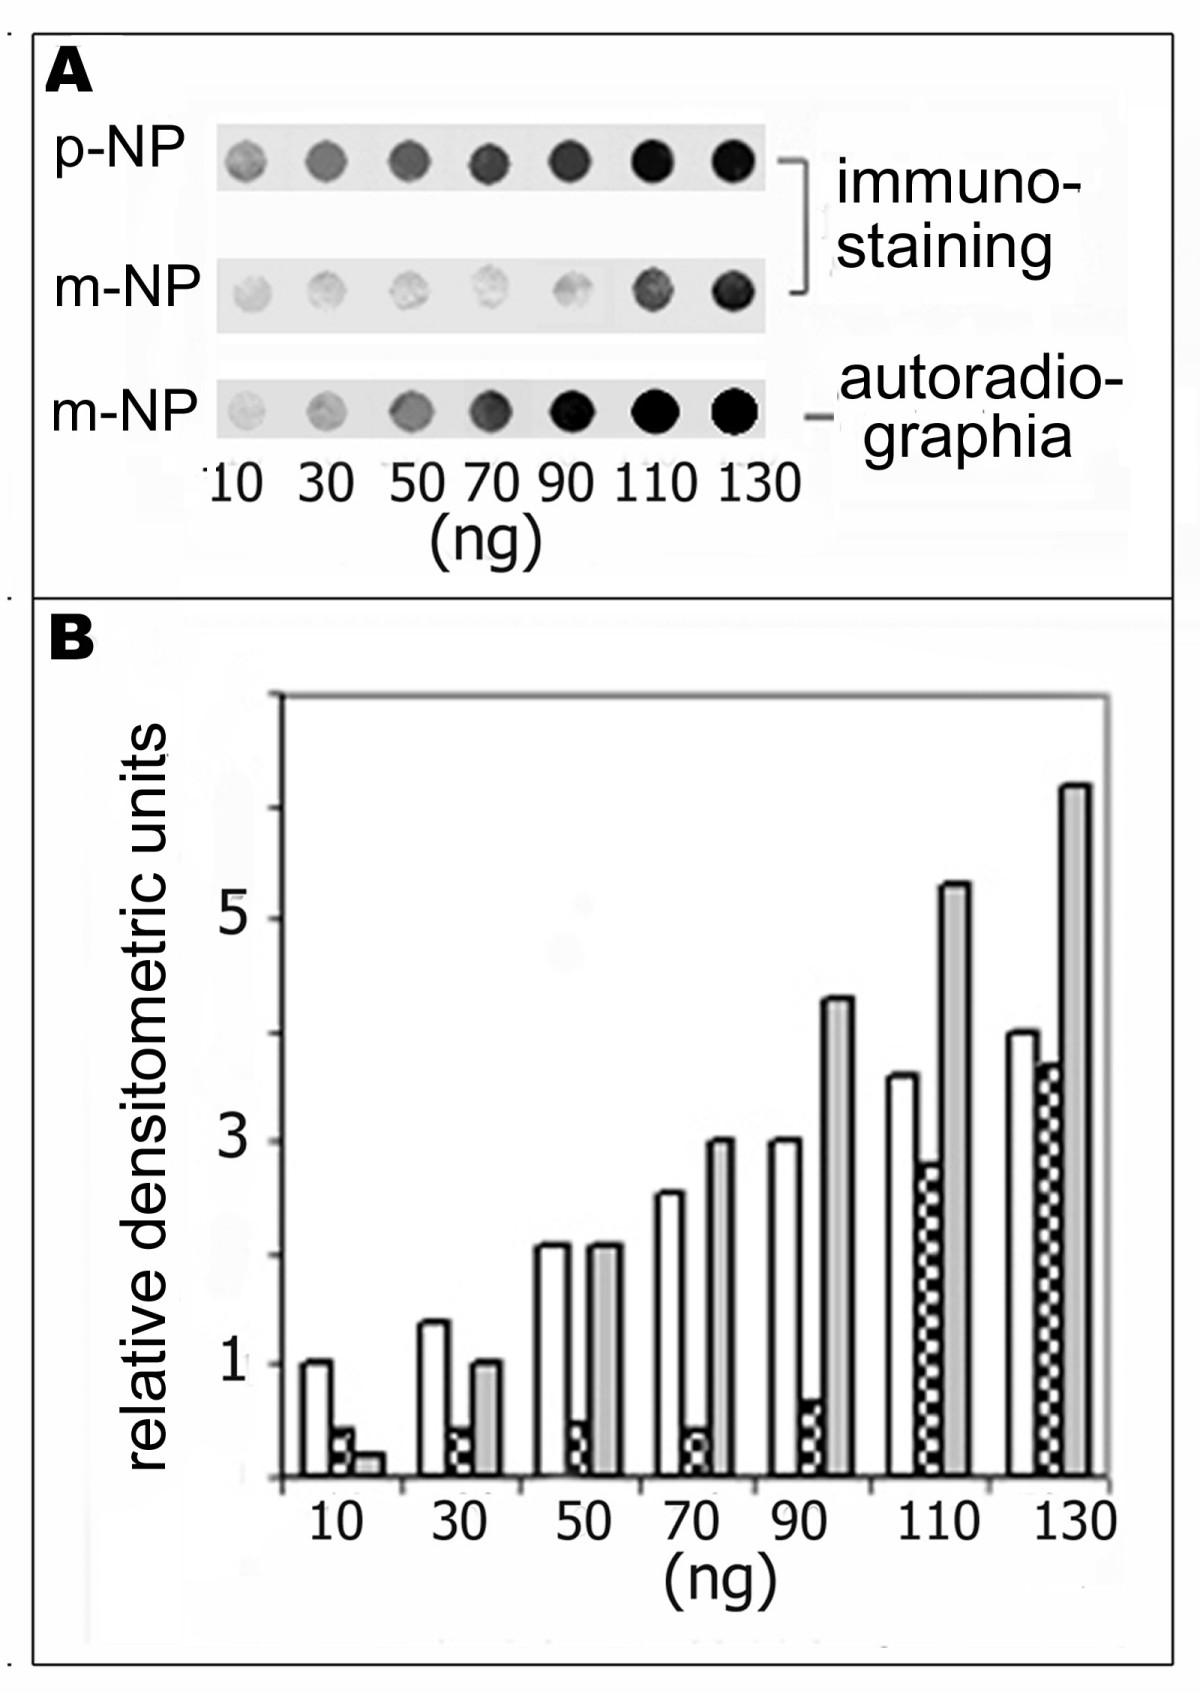 https://static-content.springer.com/image/art%3A10.1186%2F1743-422X-5-37/MediaObjects/12985_2008_Article_386_Fig2_HTML.jpg